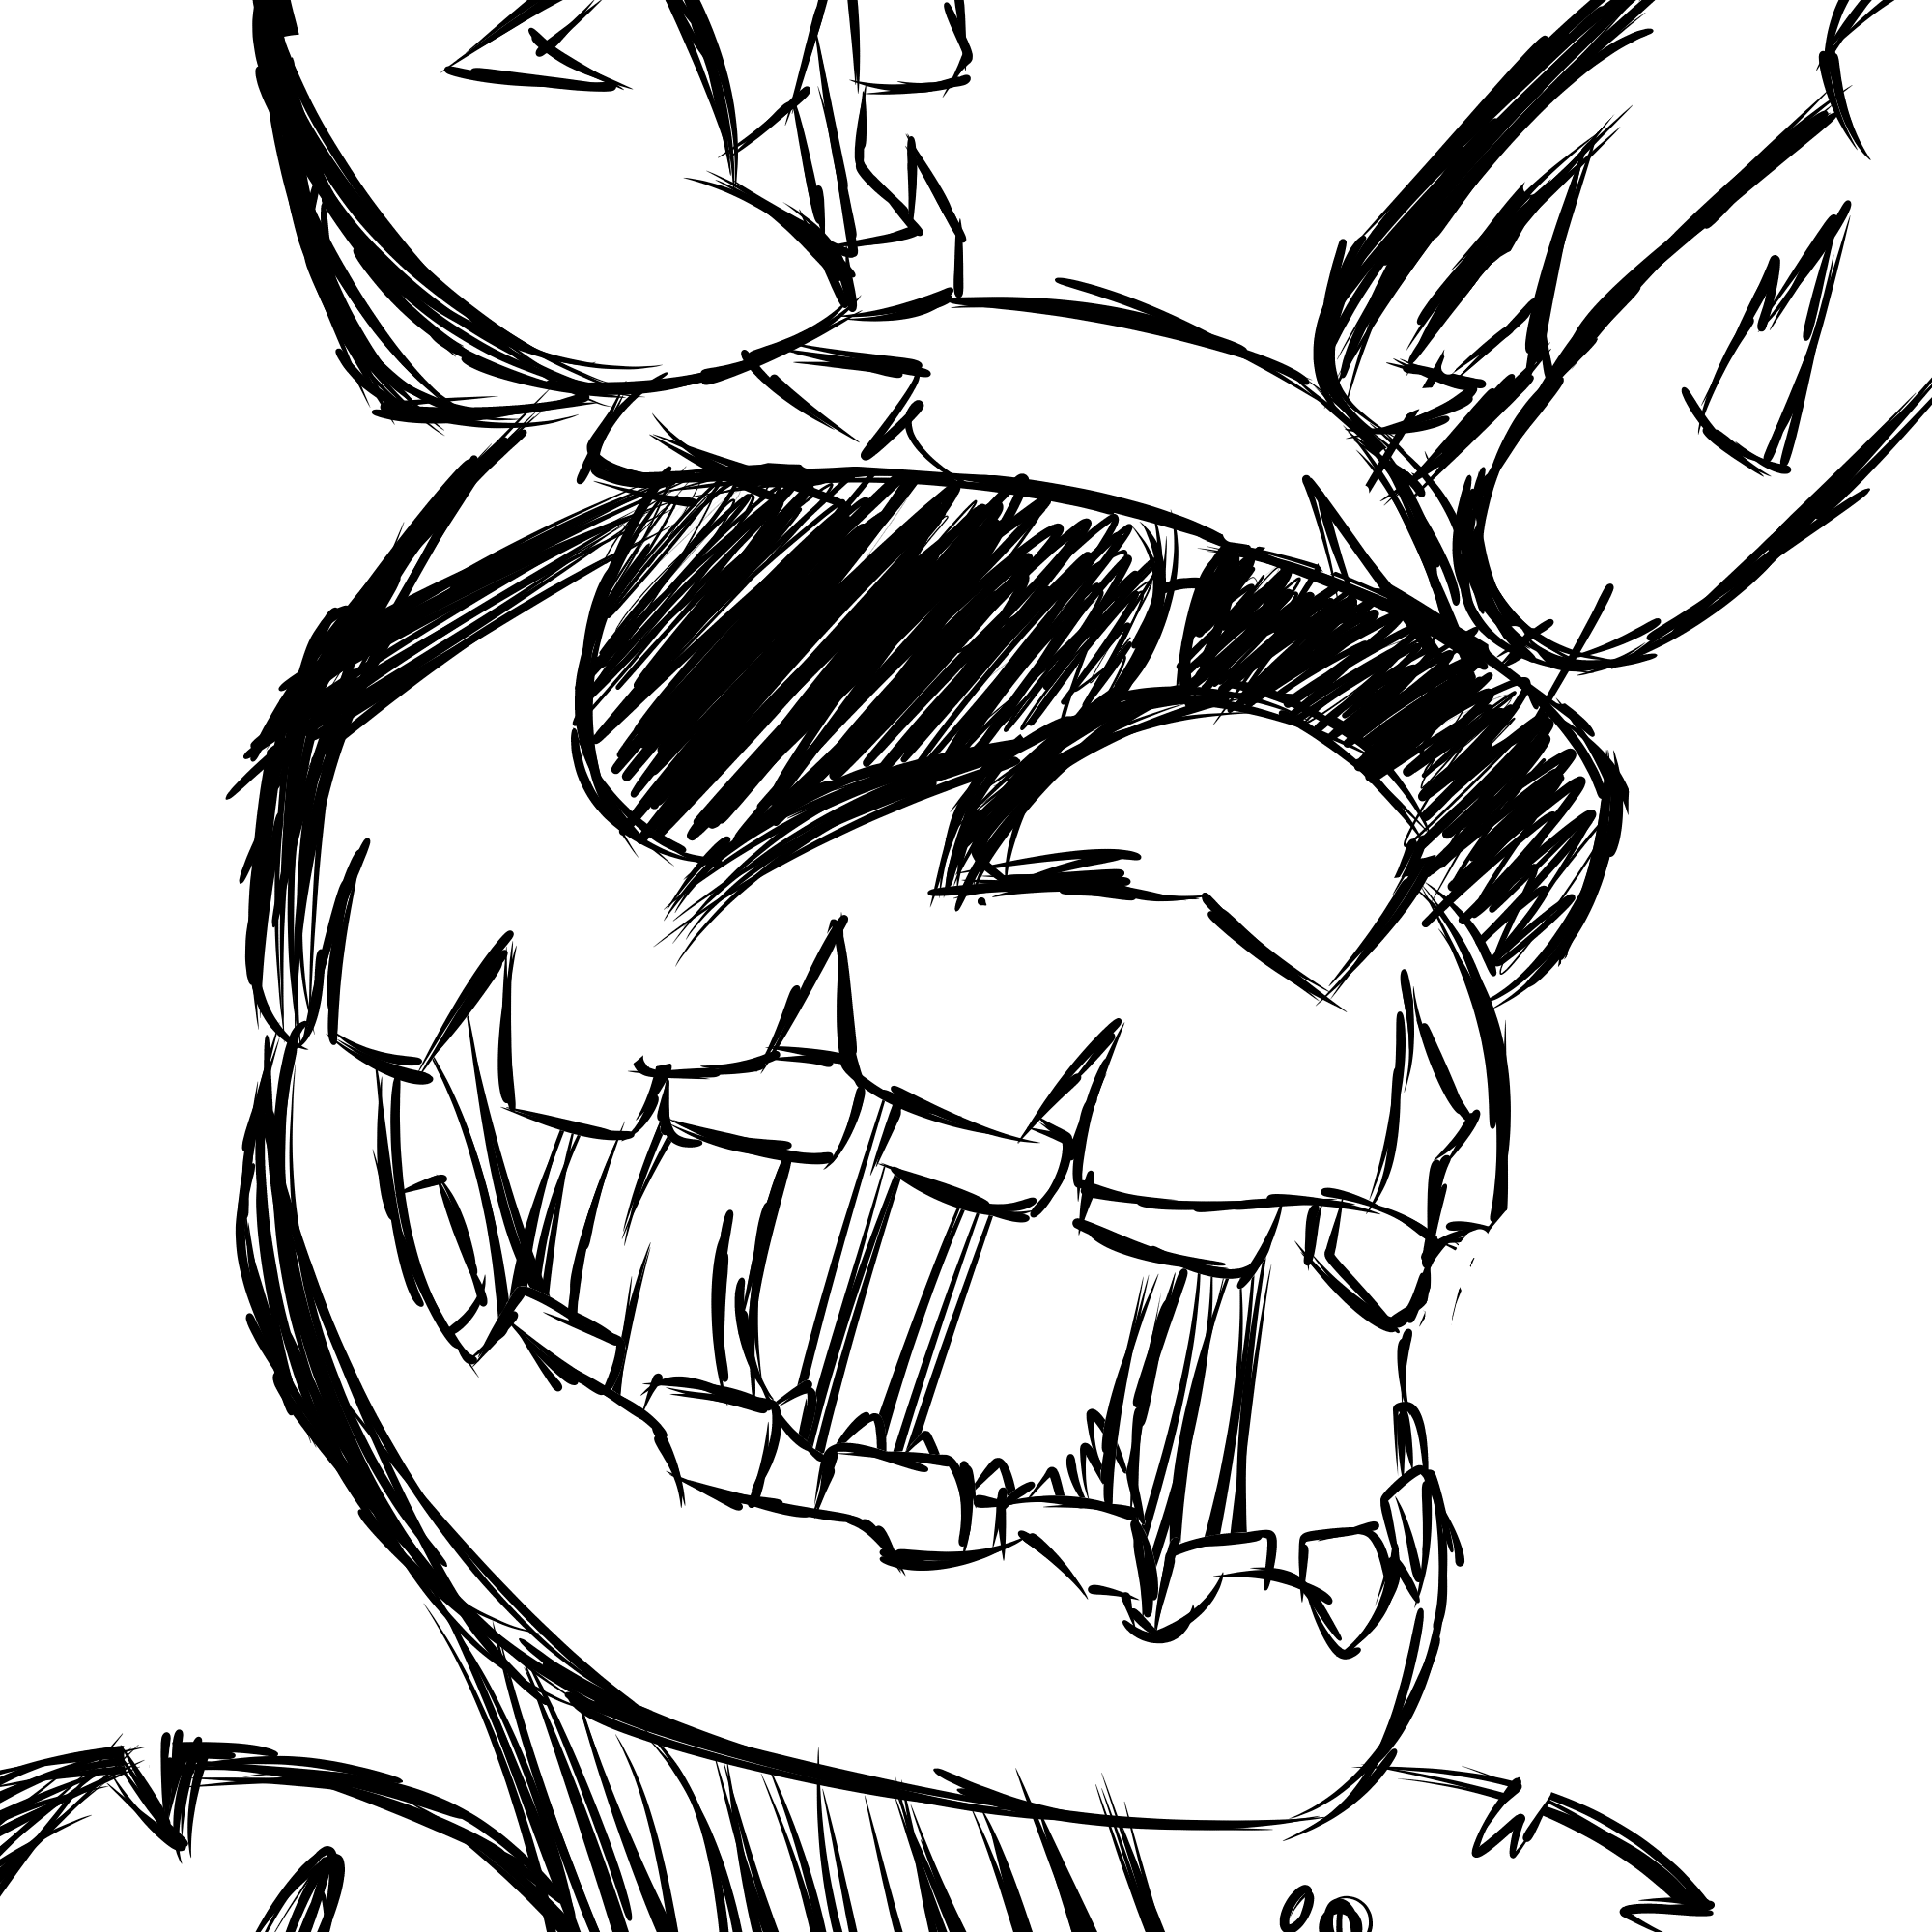 2000x2000 Random Sketch I Did To Test Medibang Paint In My New Cell Phone